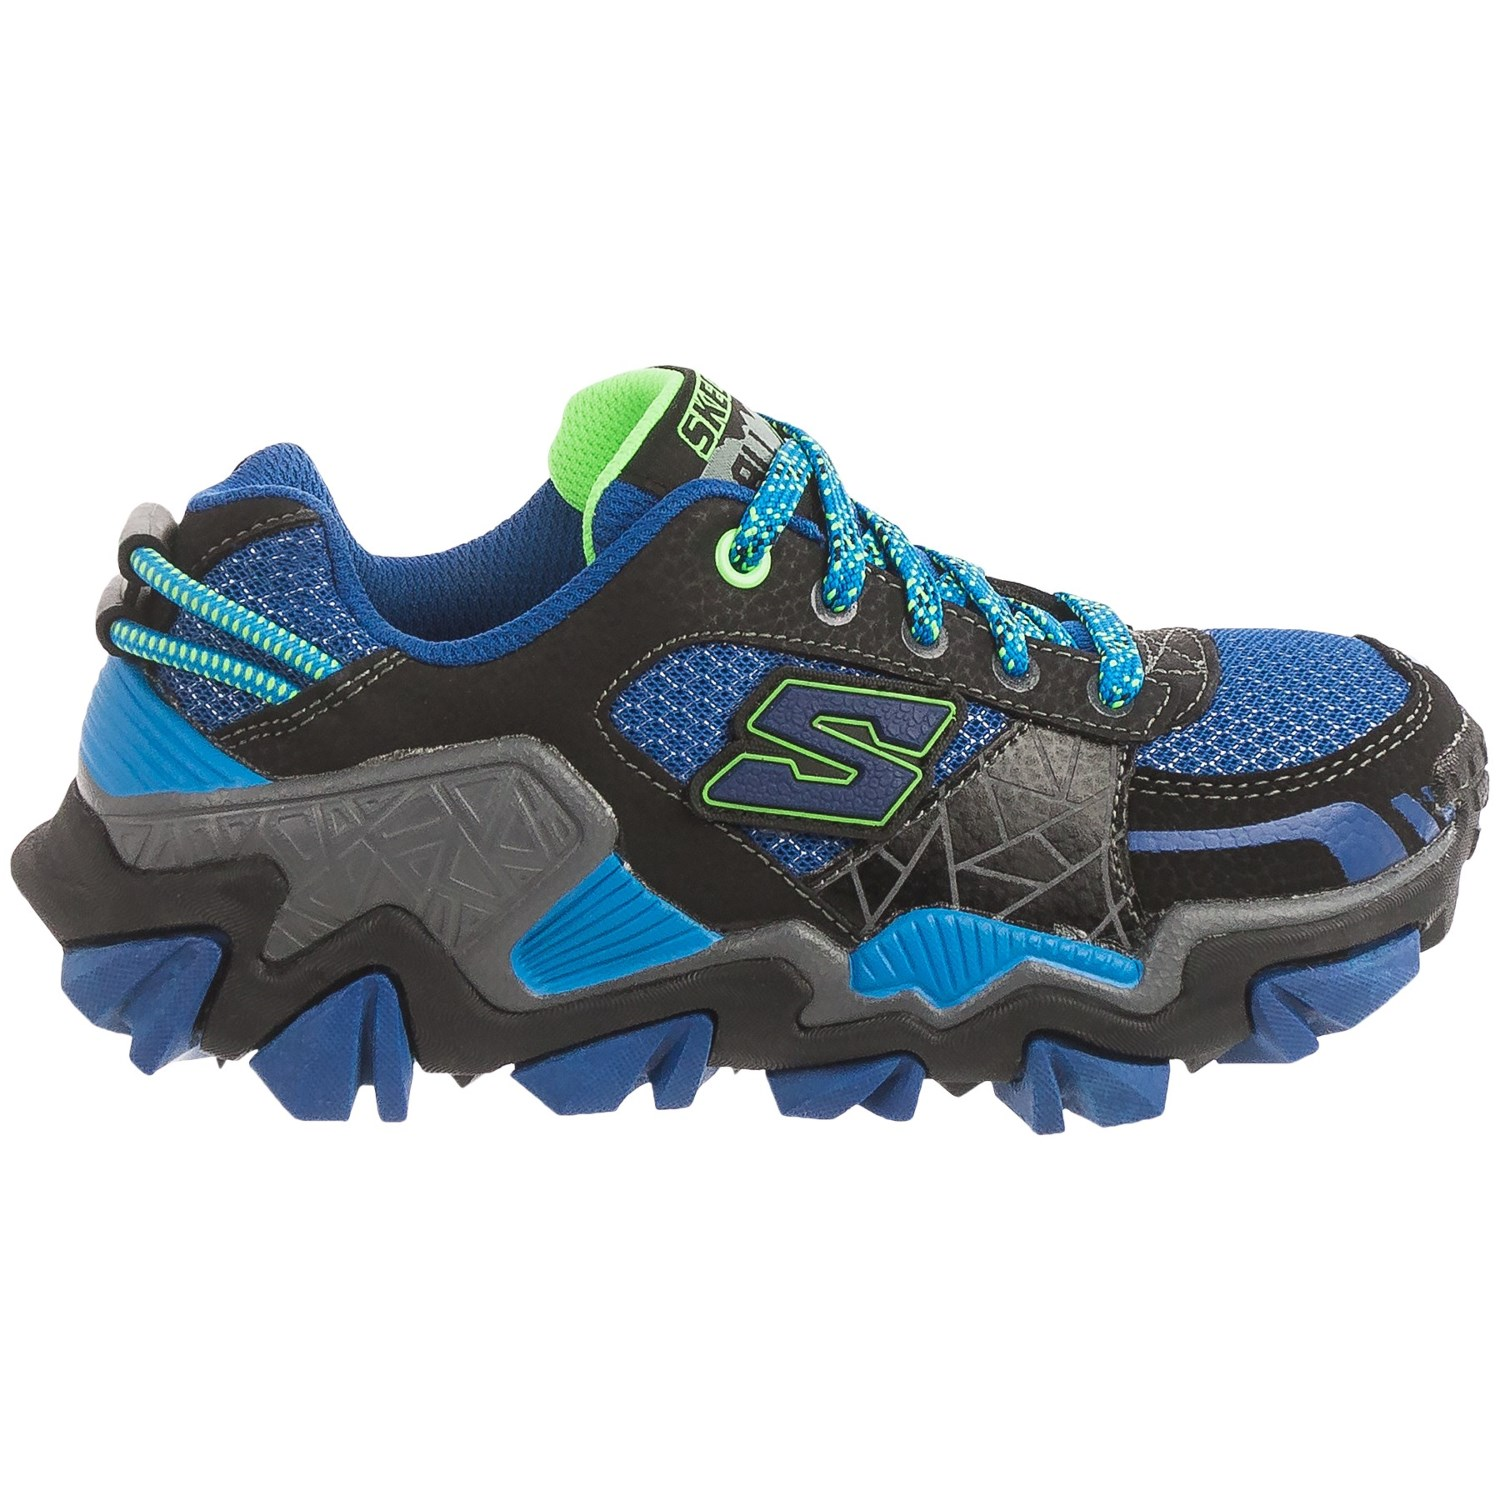 Skechers Trail Shoes Review